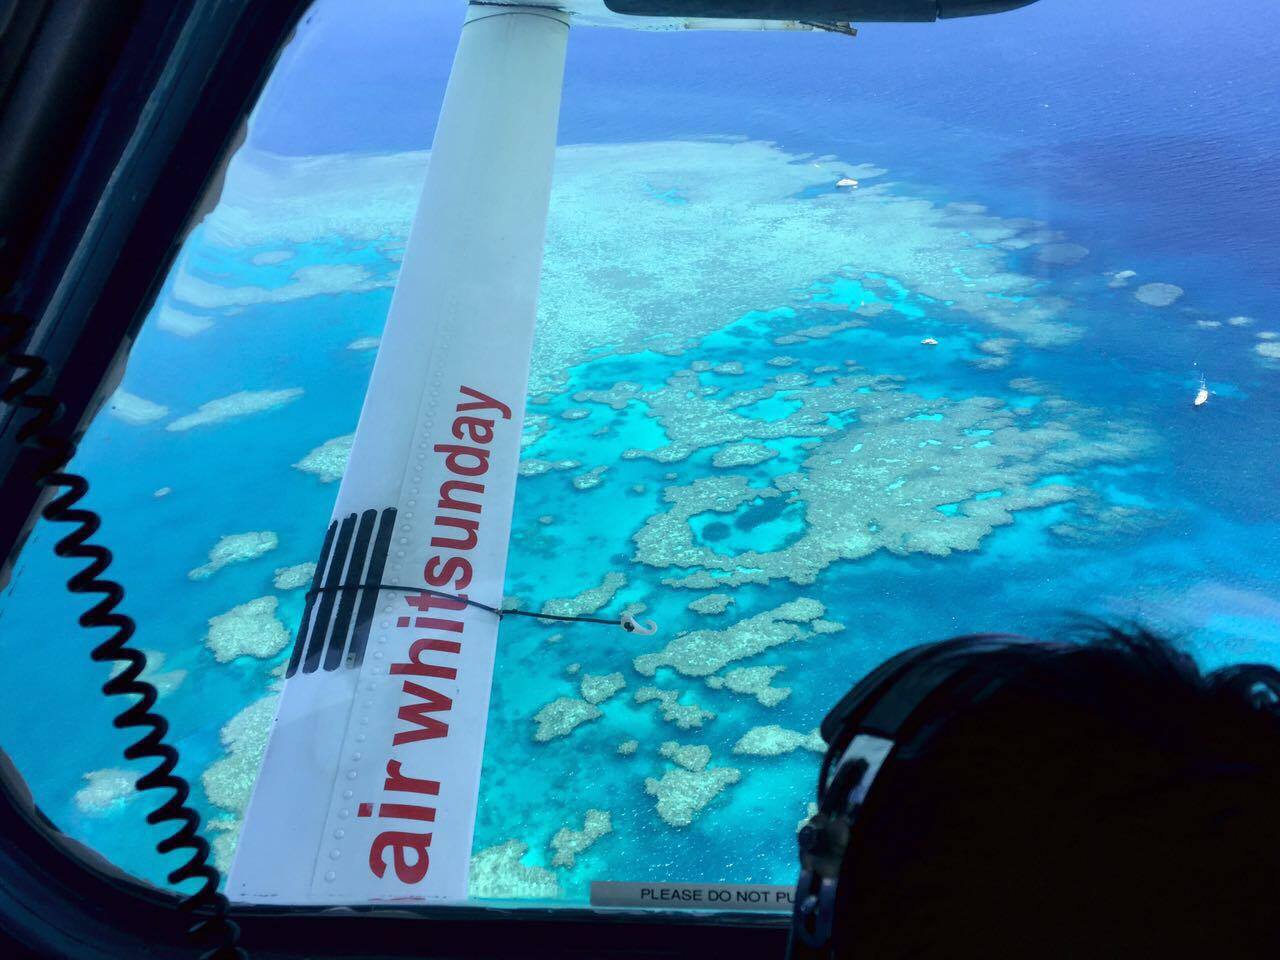 Tour operators will charter seaplanes to fly guests over the reef. The colors are astounding, and changes in depth and darkness depending on the weather and time of day.